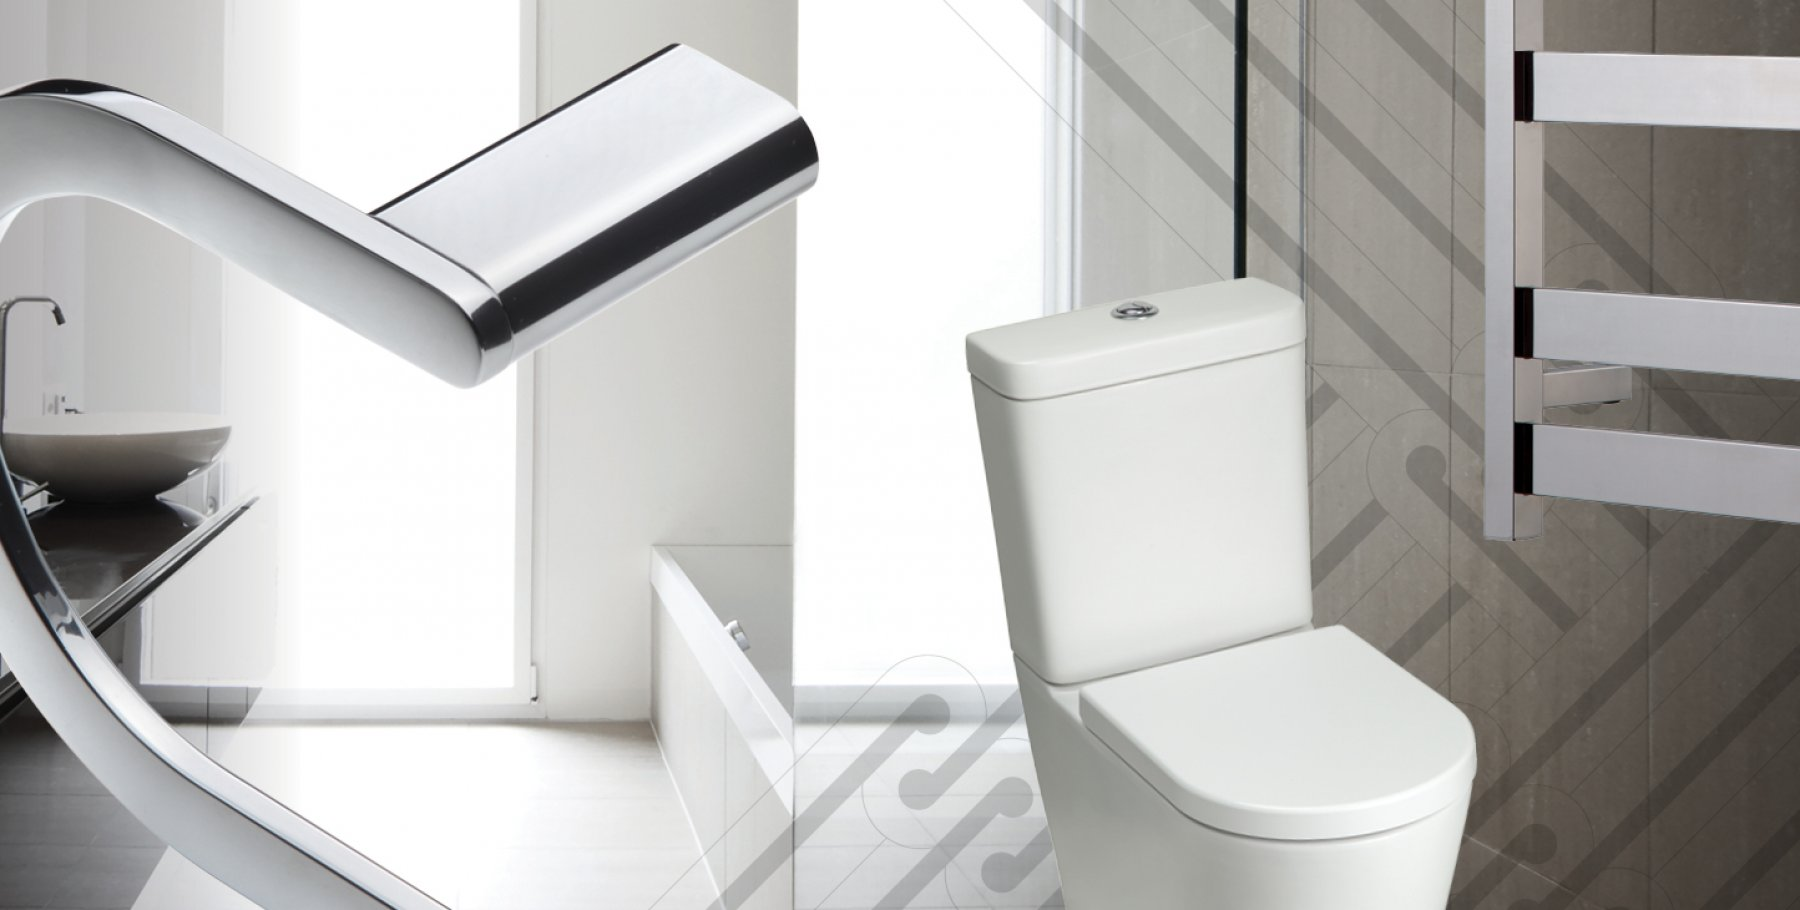 Loft Wall Faced Toilet by Heirloom International Ltd